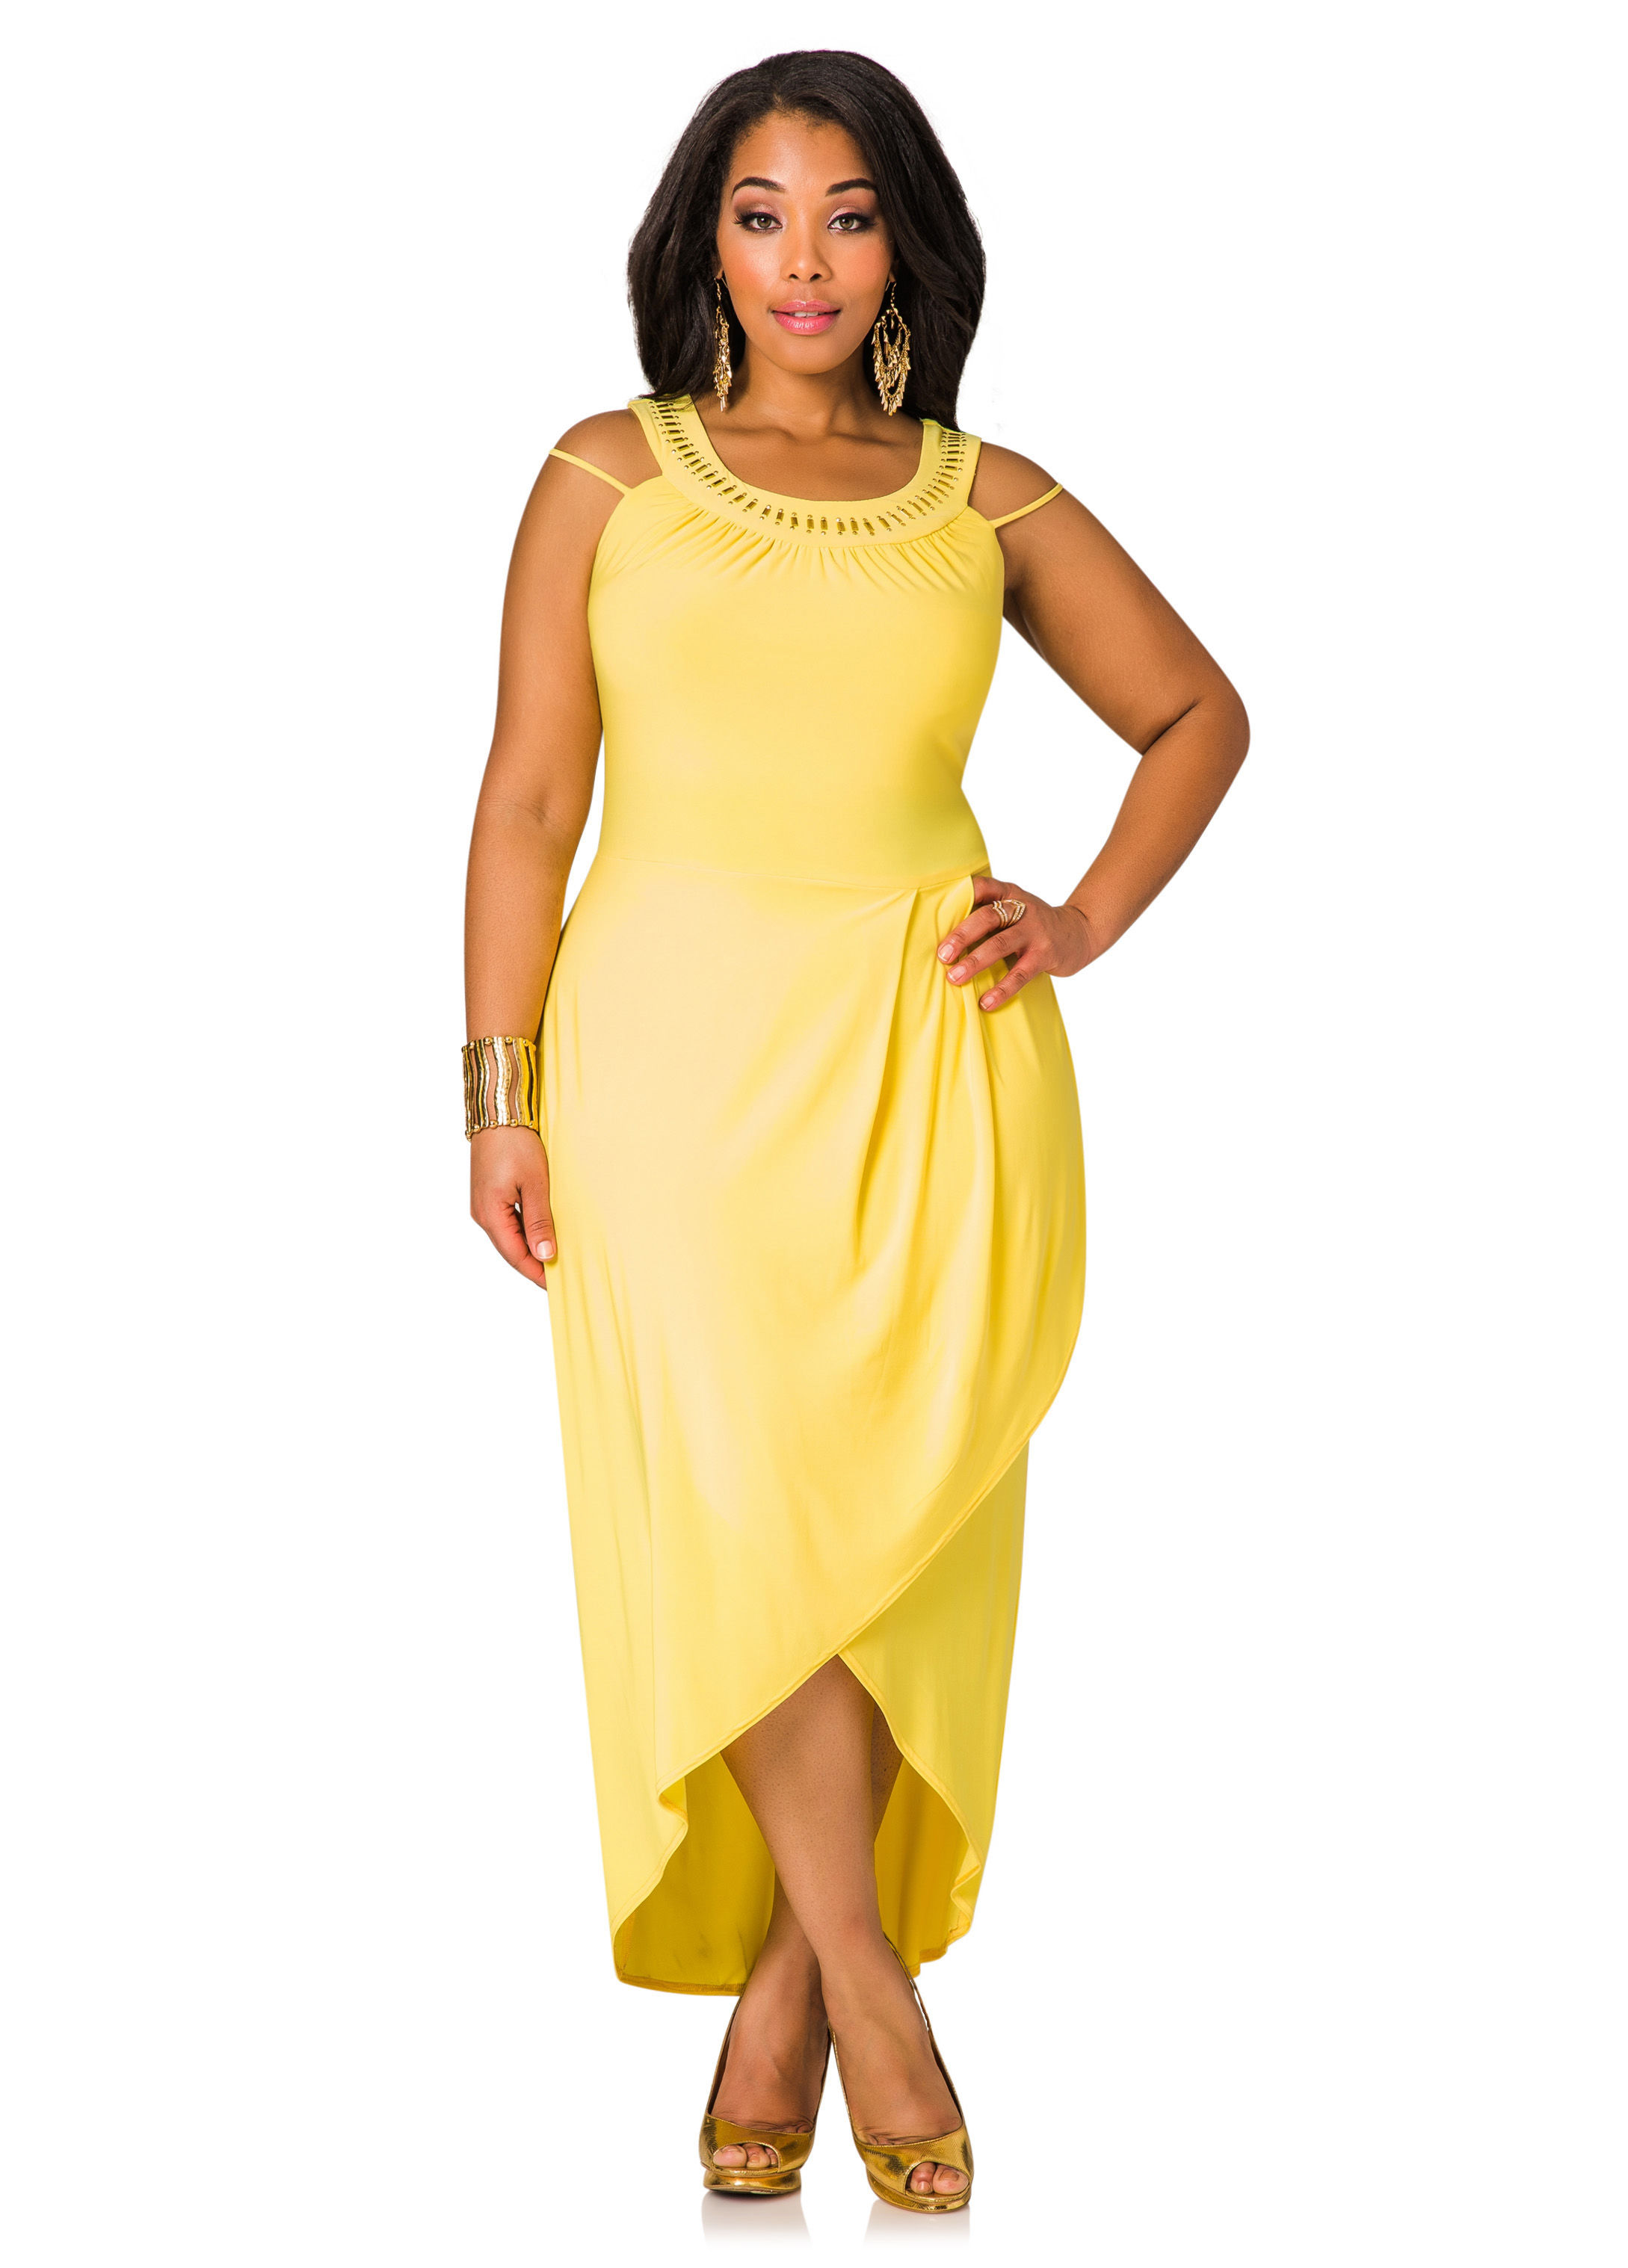 Kentucky Derby-Inspired Plus-Size Dresses You'd Love